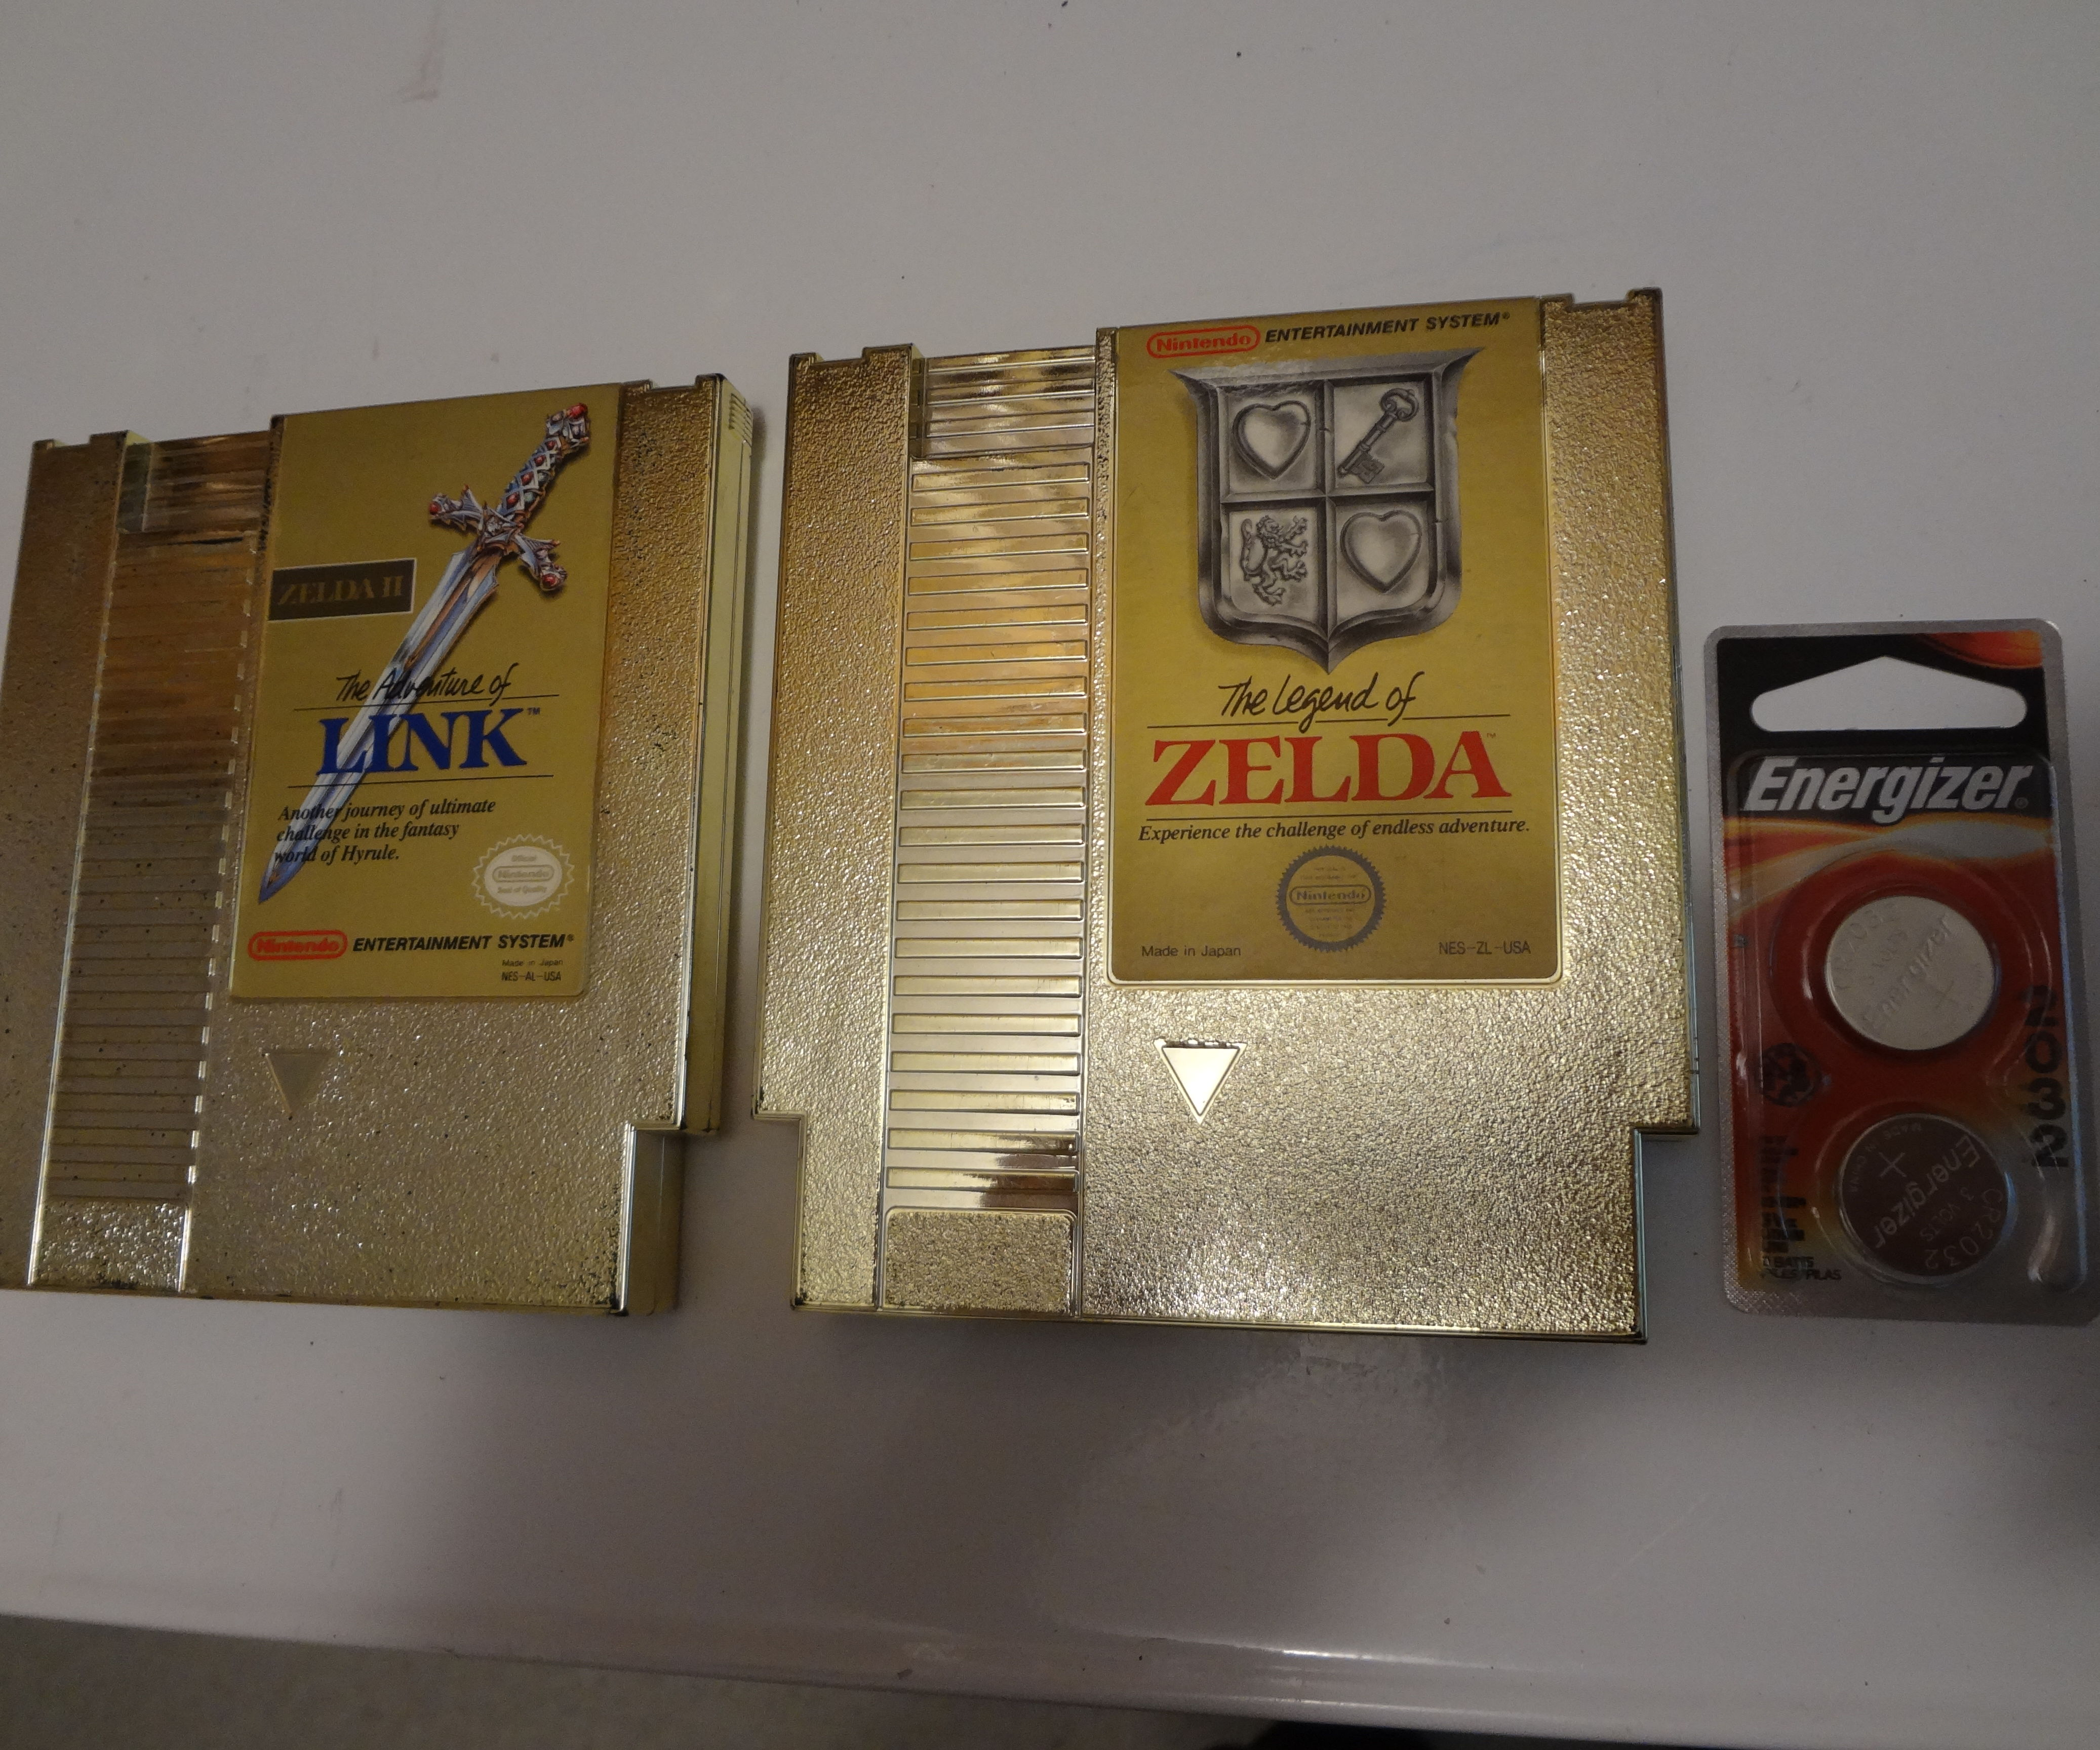 Keeping Nintendo Game Save Intact While Installing New Battery.